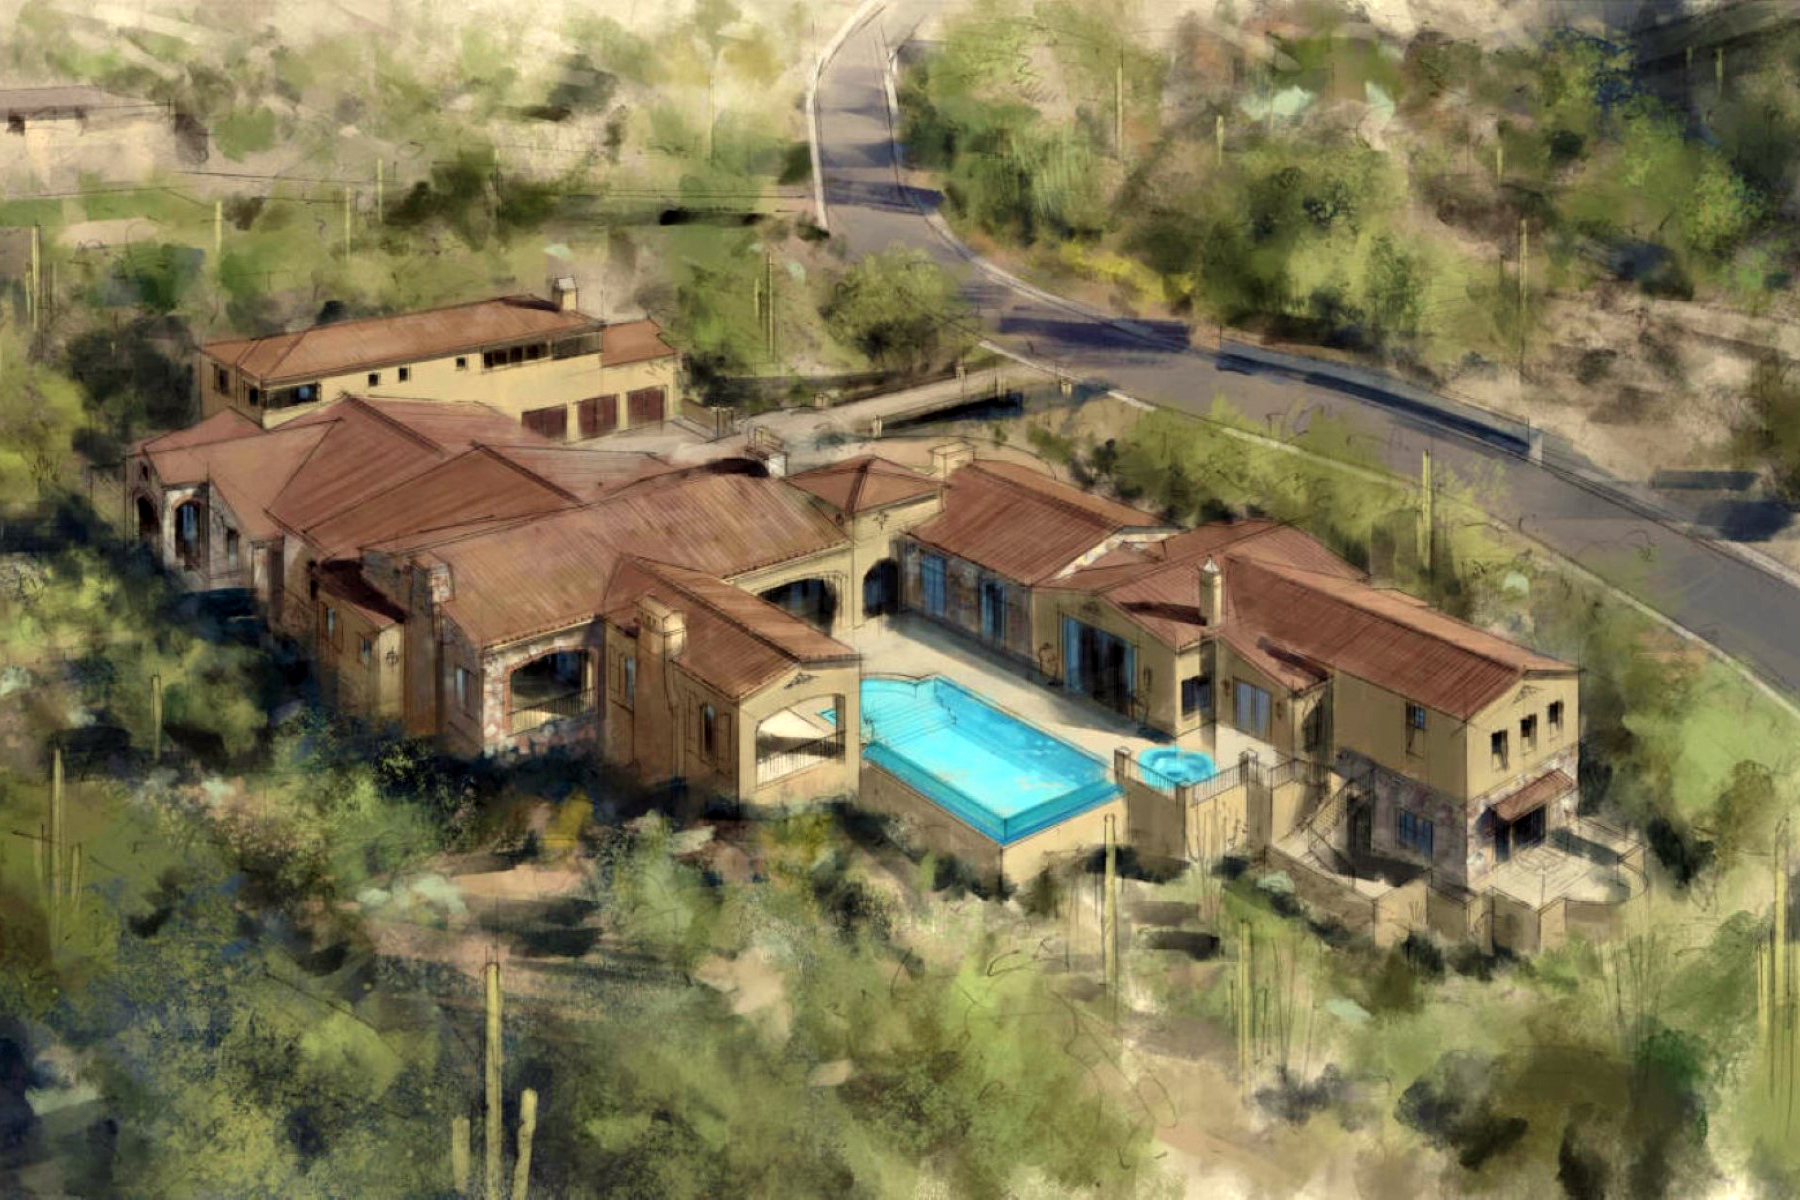 一戸建て のために 売買 アット Stunning Silverleaf Luxury New Build With Valley Views 11004 E Feathersong Lane Scottsdale, アリゾナ 85255 アメリカ合衆国